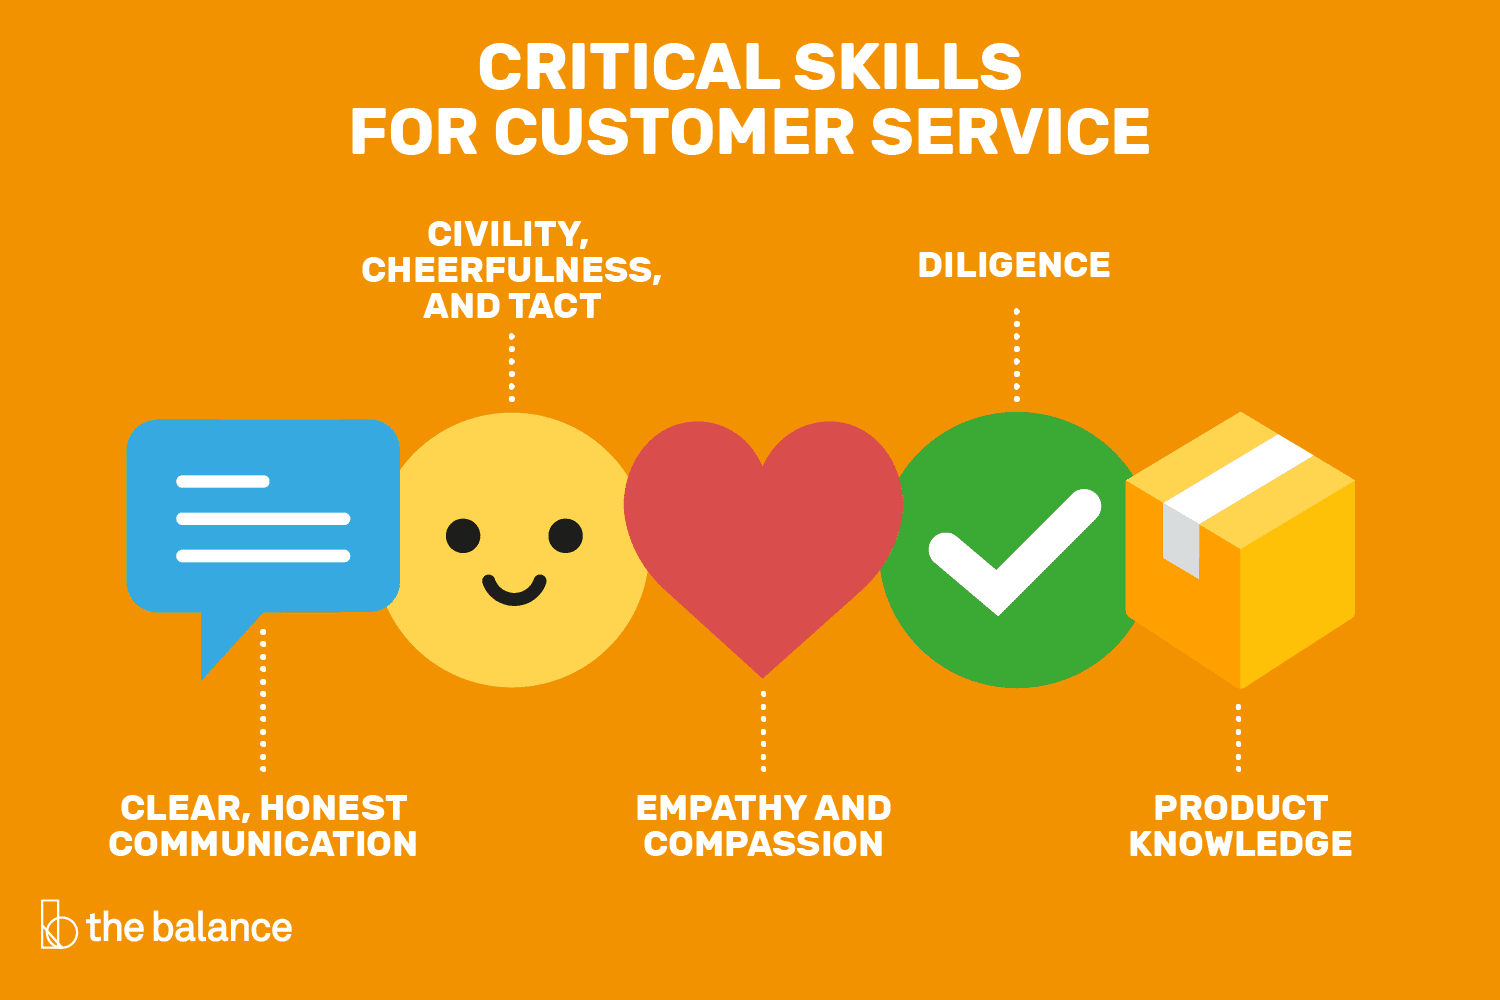 Critical Skills for Customer Service